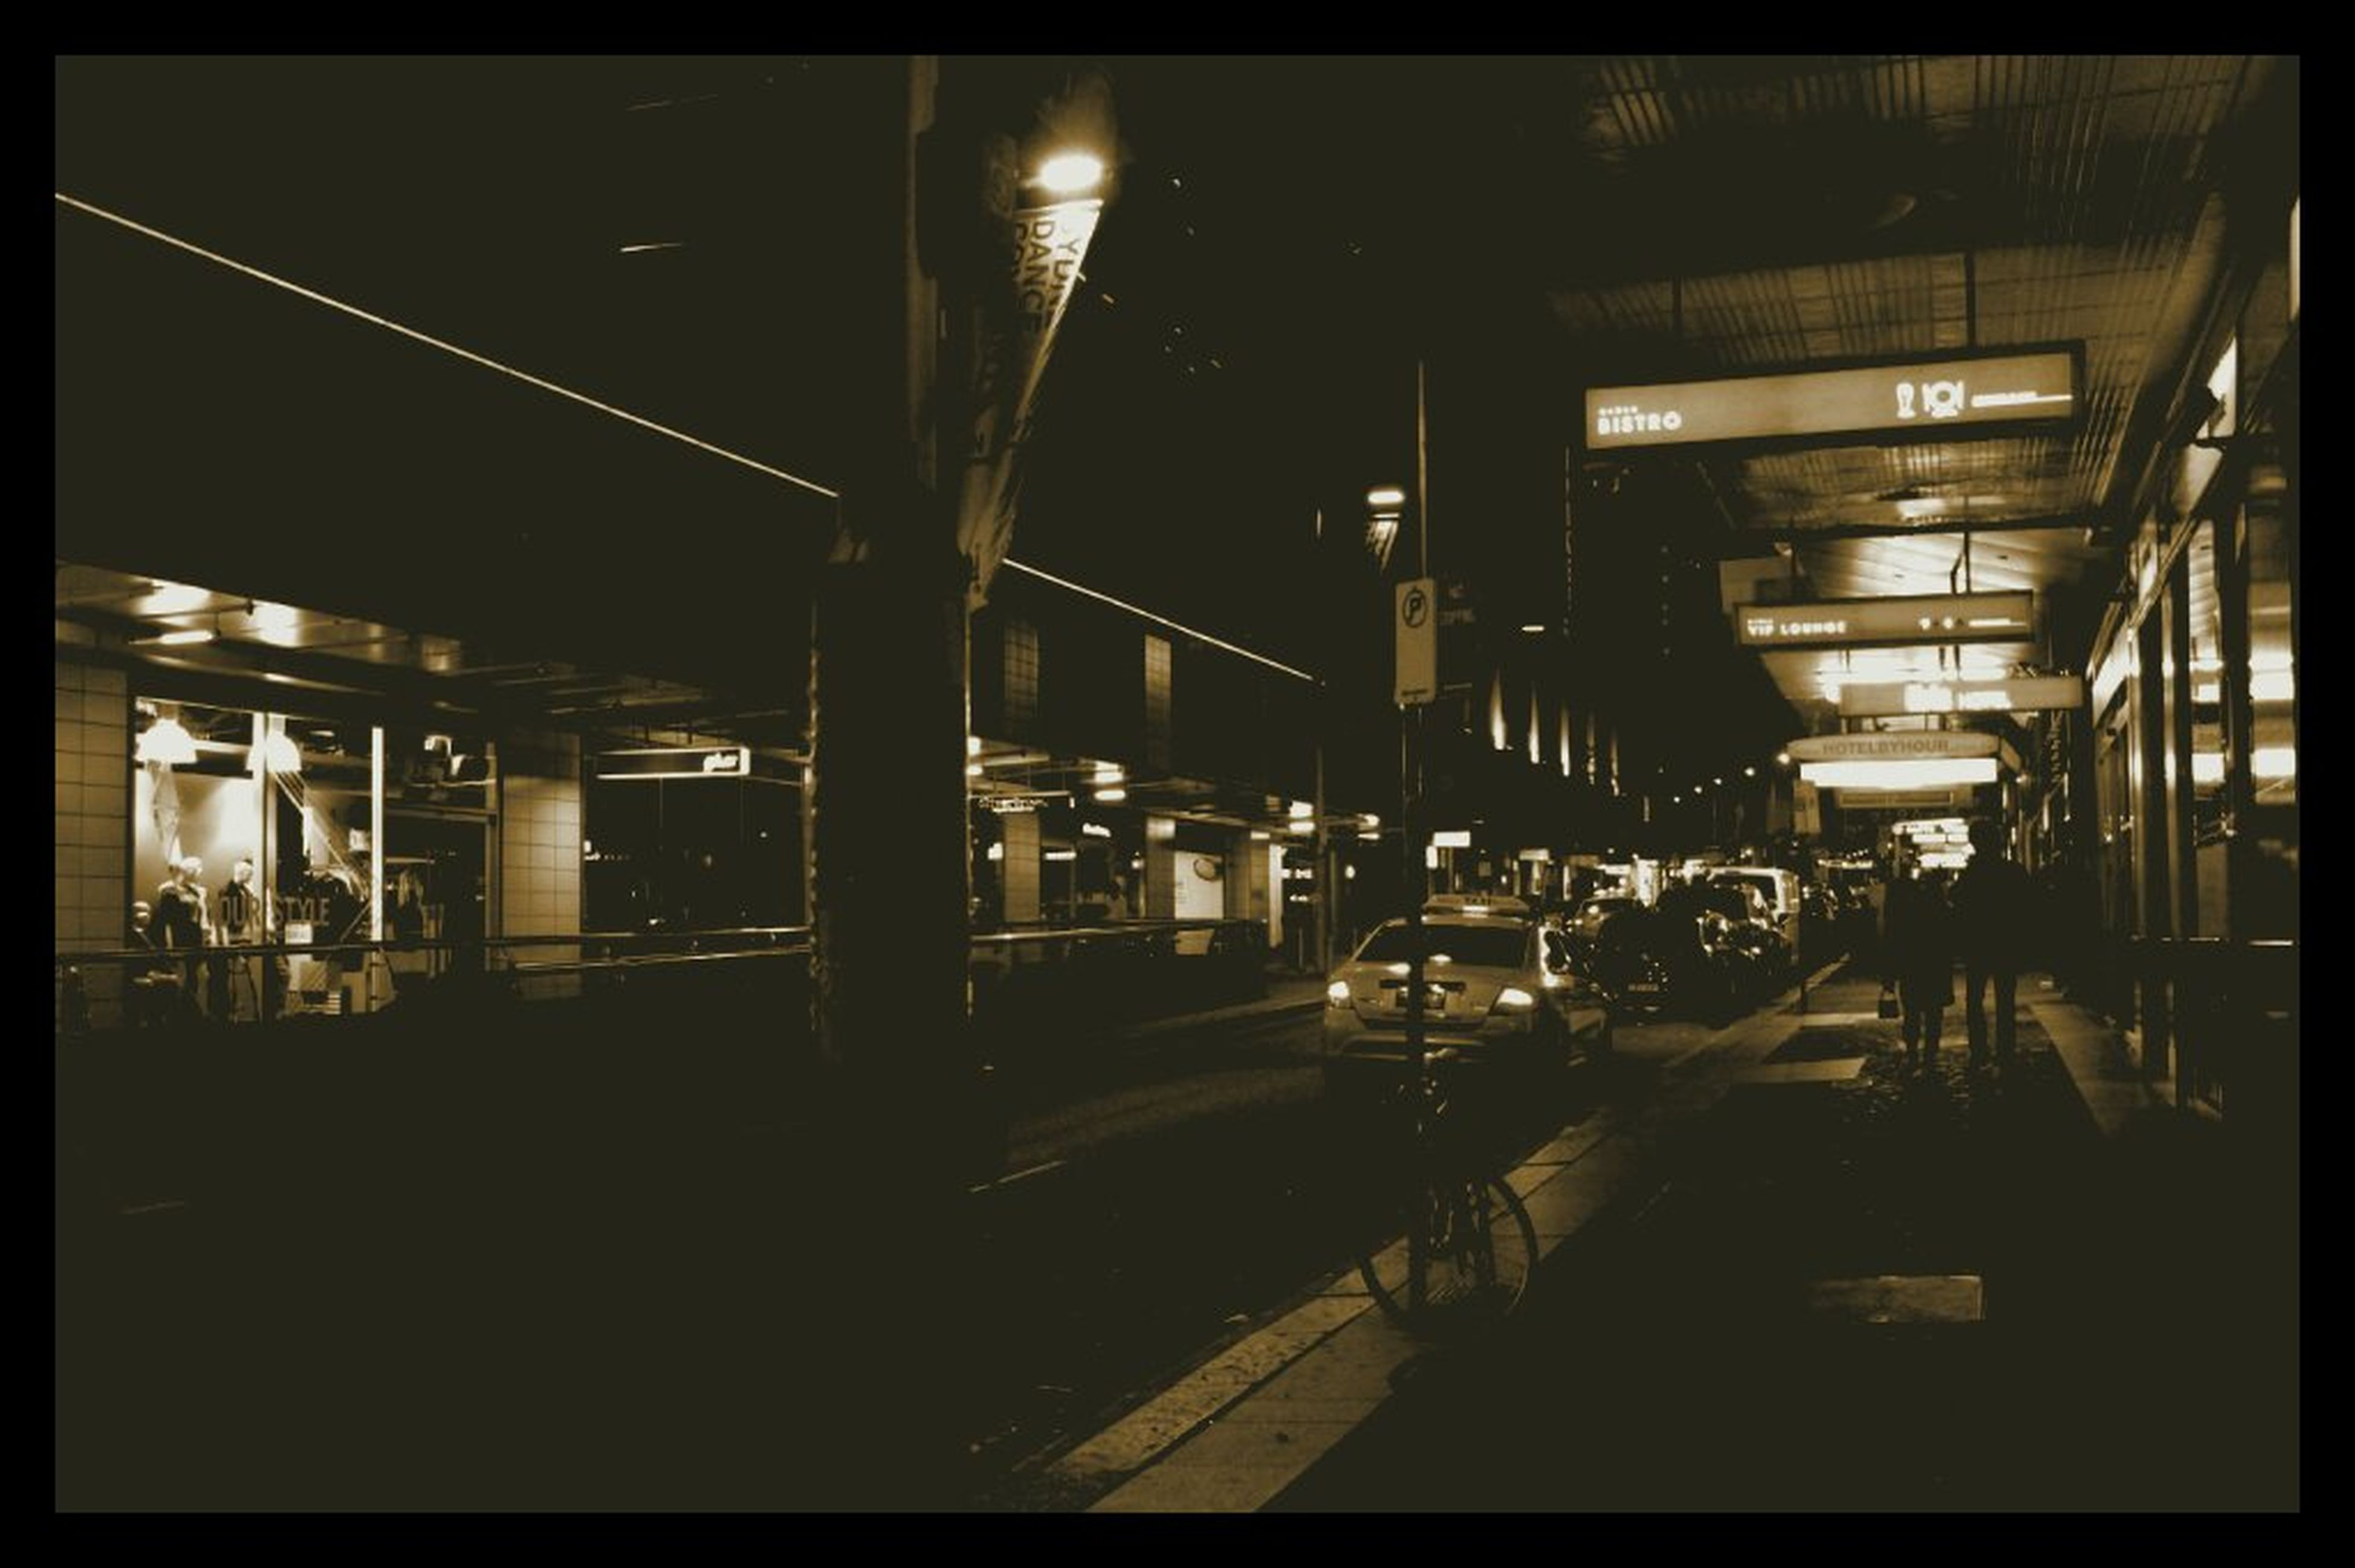 illuminated, transfer print, night, transportation, architecture, built structure, auto post production filter, city, mode of transport, building exterior, city life, public transportation, lighting equipment, street, land vehicle, railroad station, incidental people, railroad station platform, street light, car